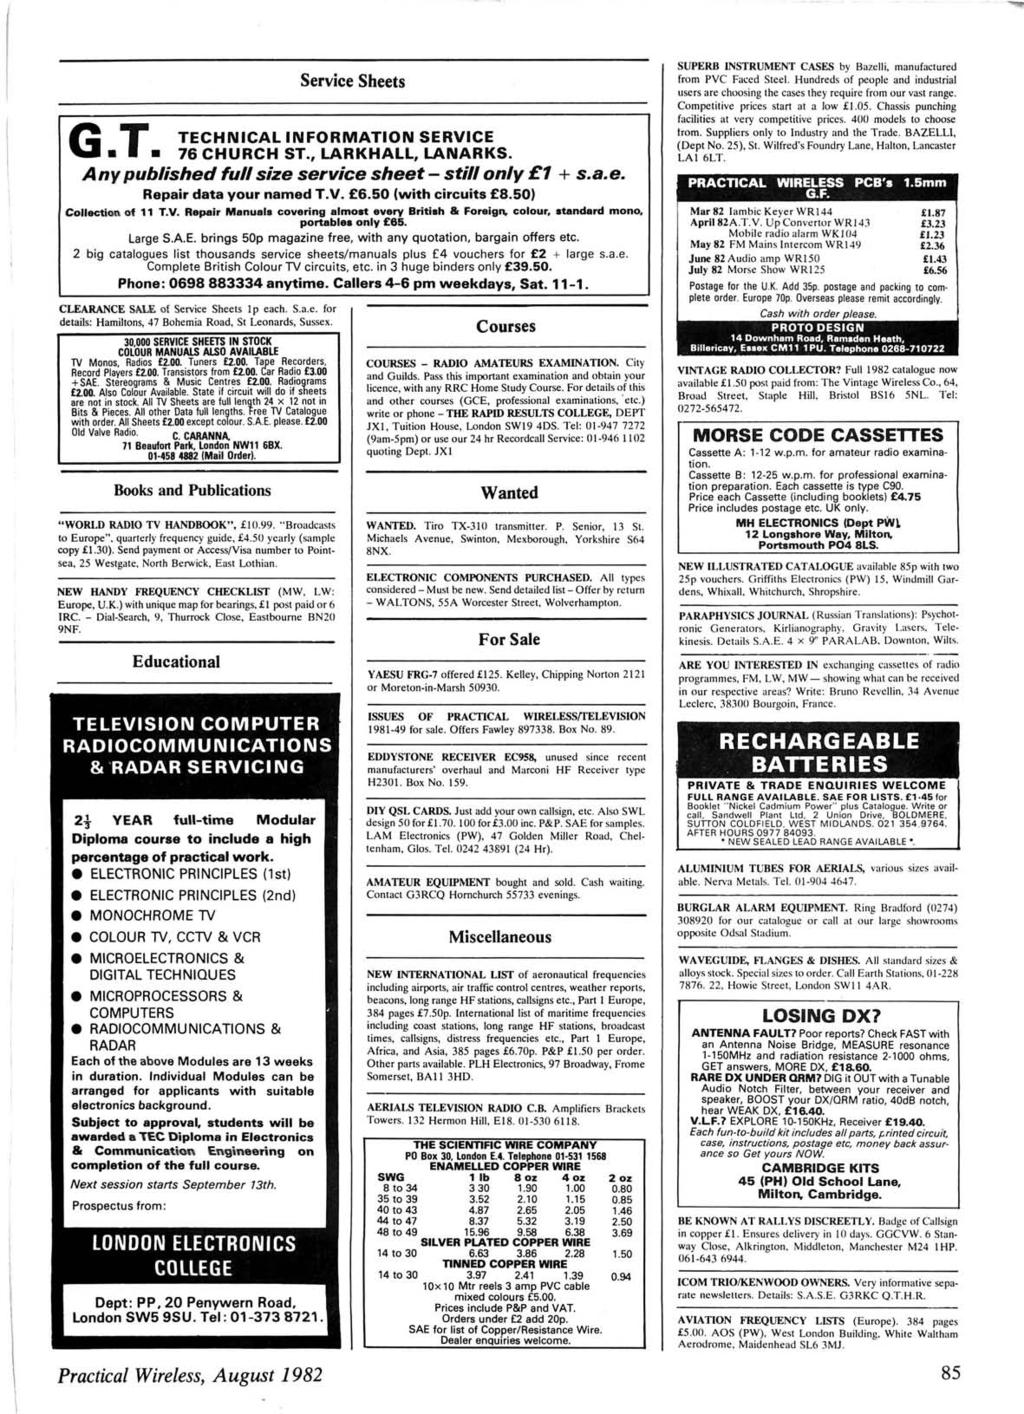 - G T Service Sheets TECHNCAL NFORMATON SERVCE 76 CHURCH ST., LARKHALL, LANARKS. A ny published full size service sheet - still only 1 + s.a.e. Repair data your named T.V. 6.50 (with circuits 8.